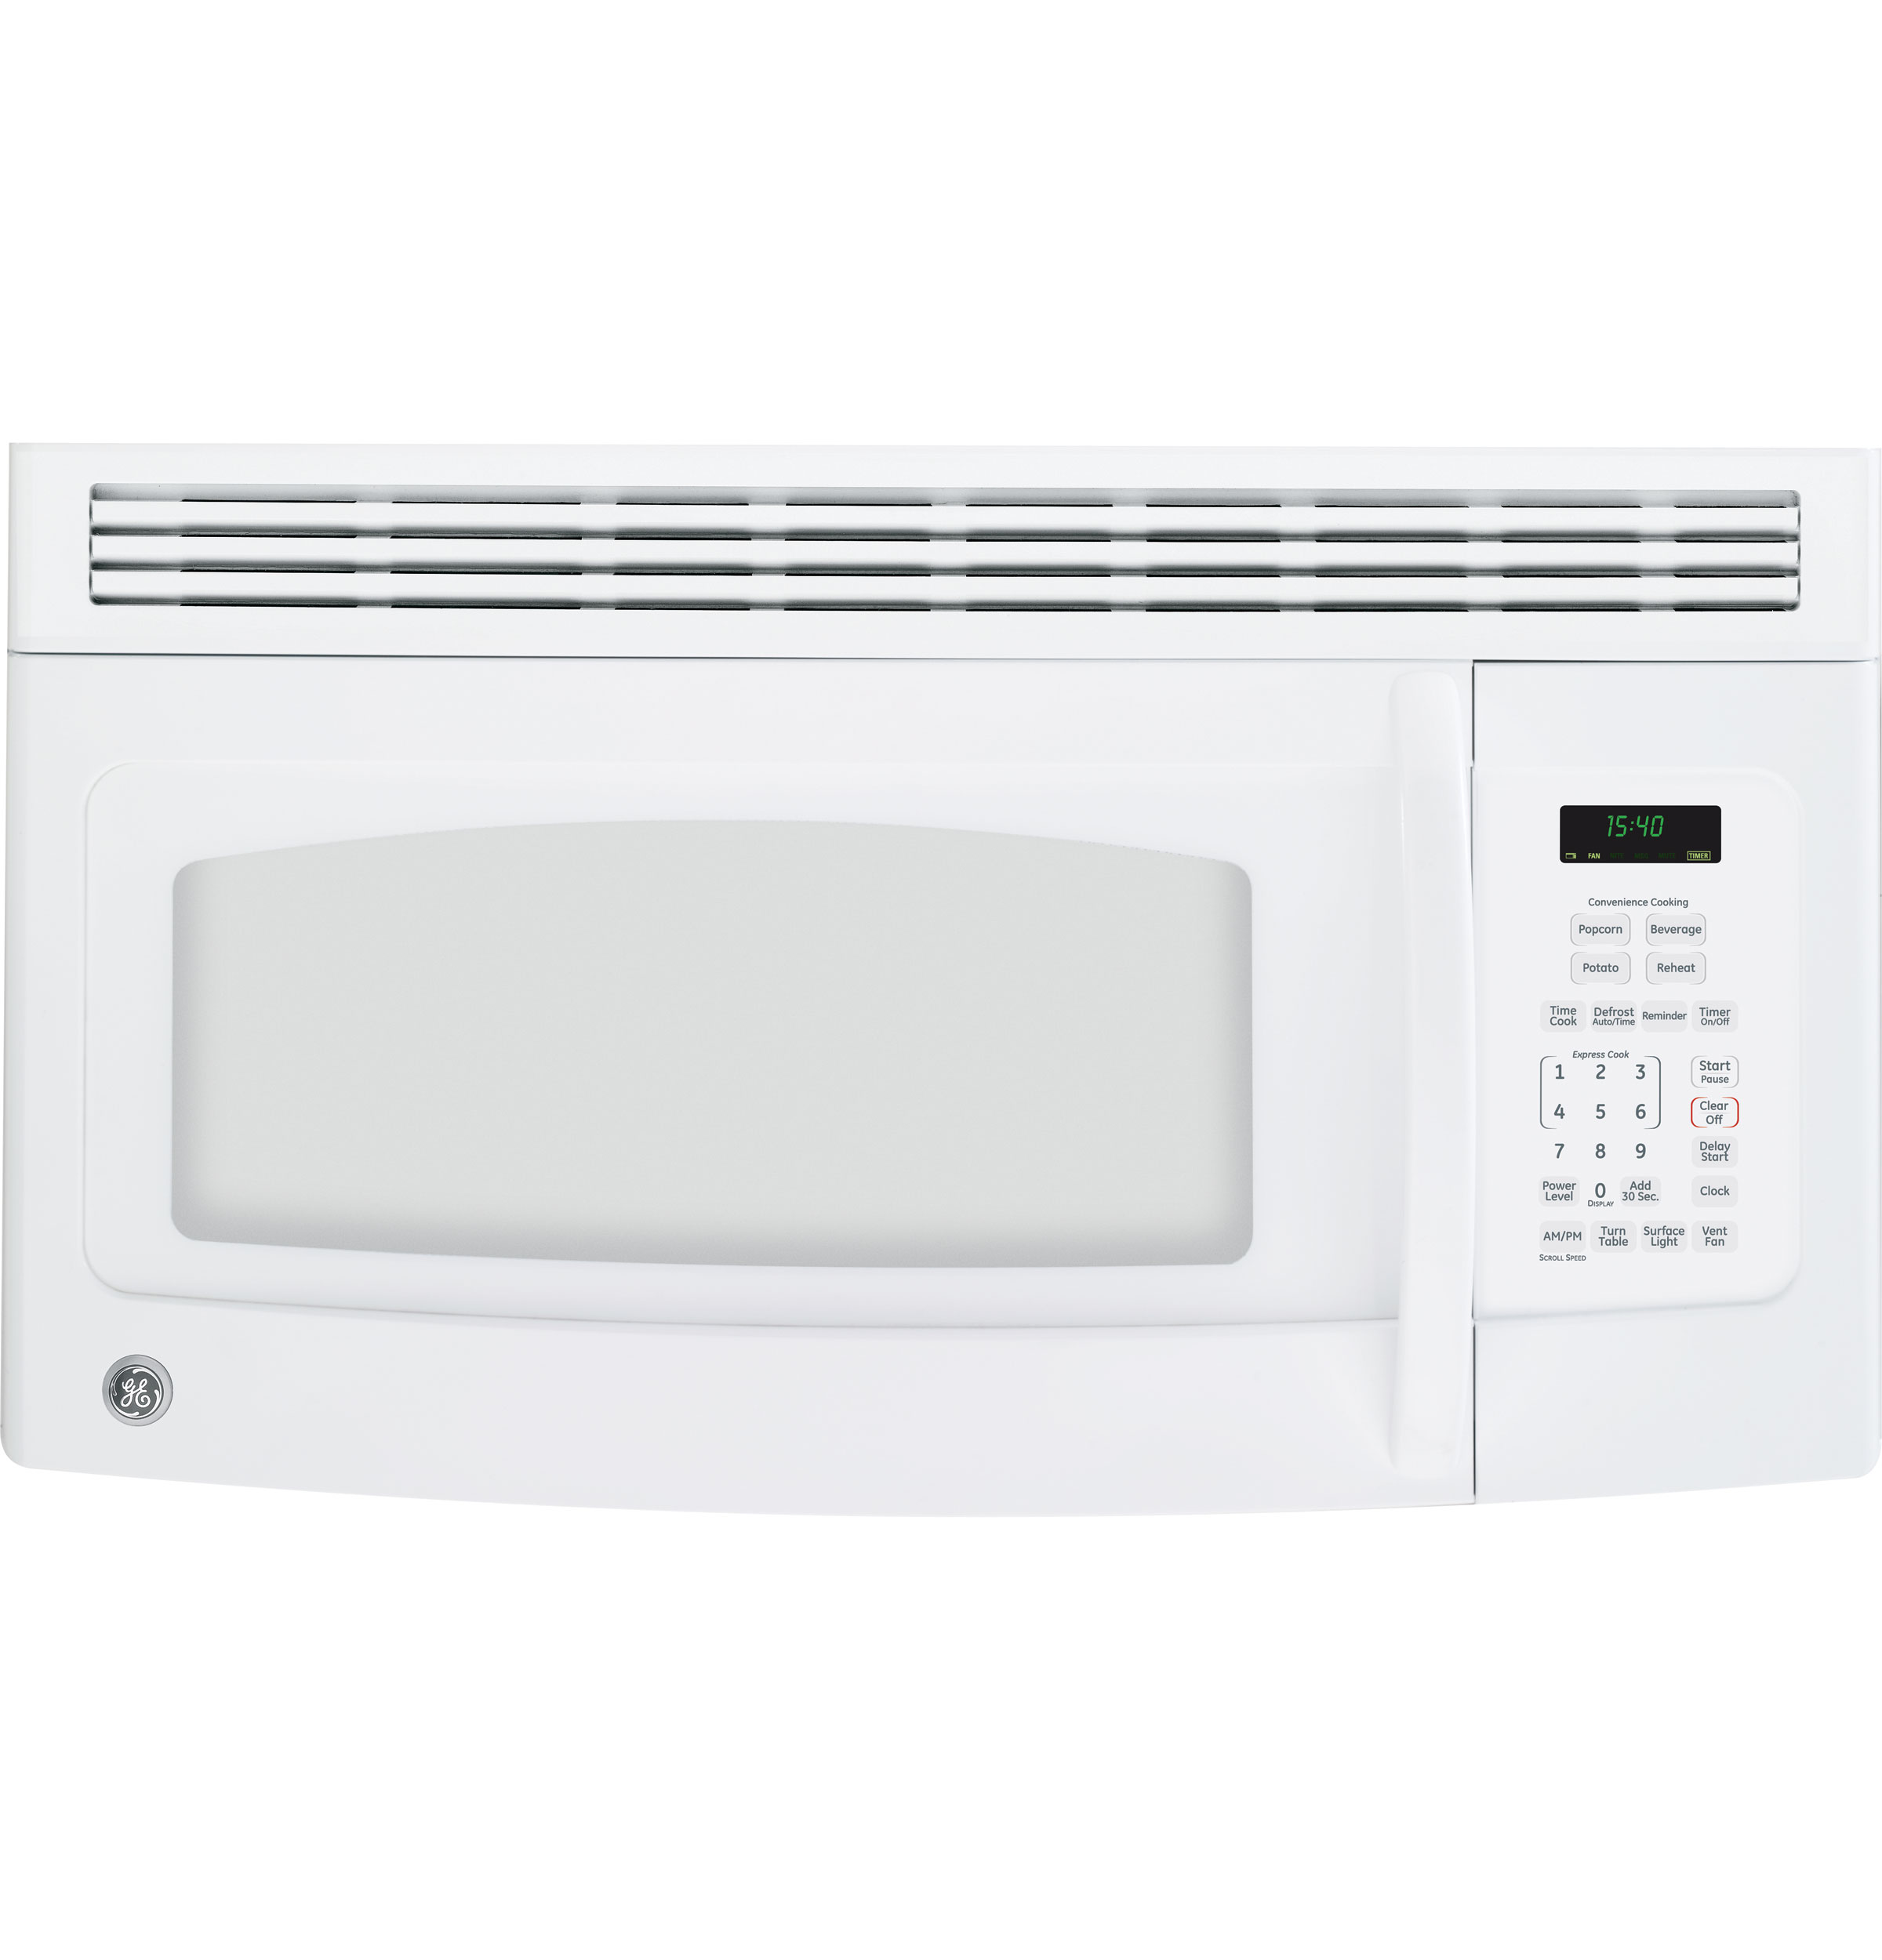 Ge spacemaker over the range microwave oven jvm1540dnww ge product image publicscrutiny Gallery